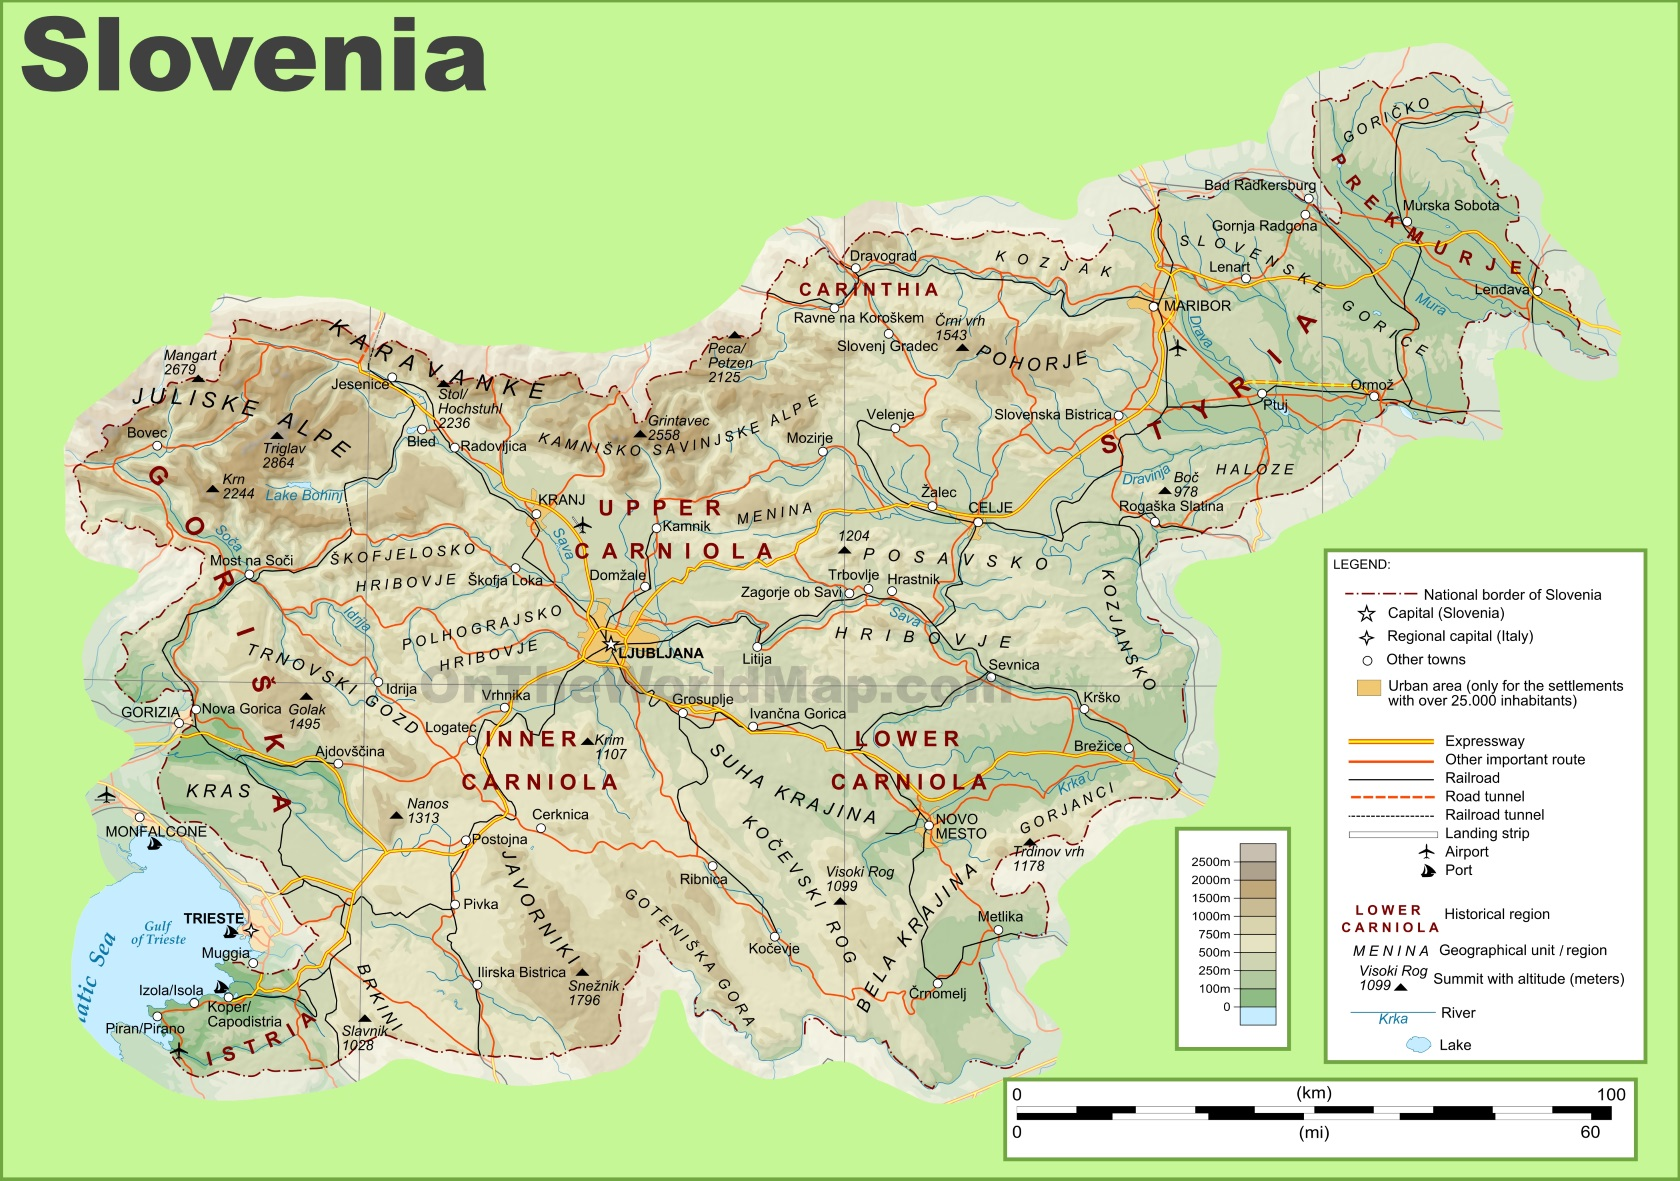 Slovenia physical map